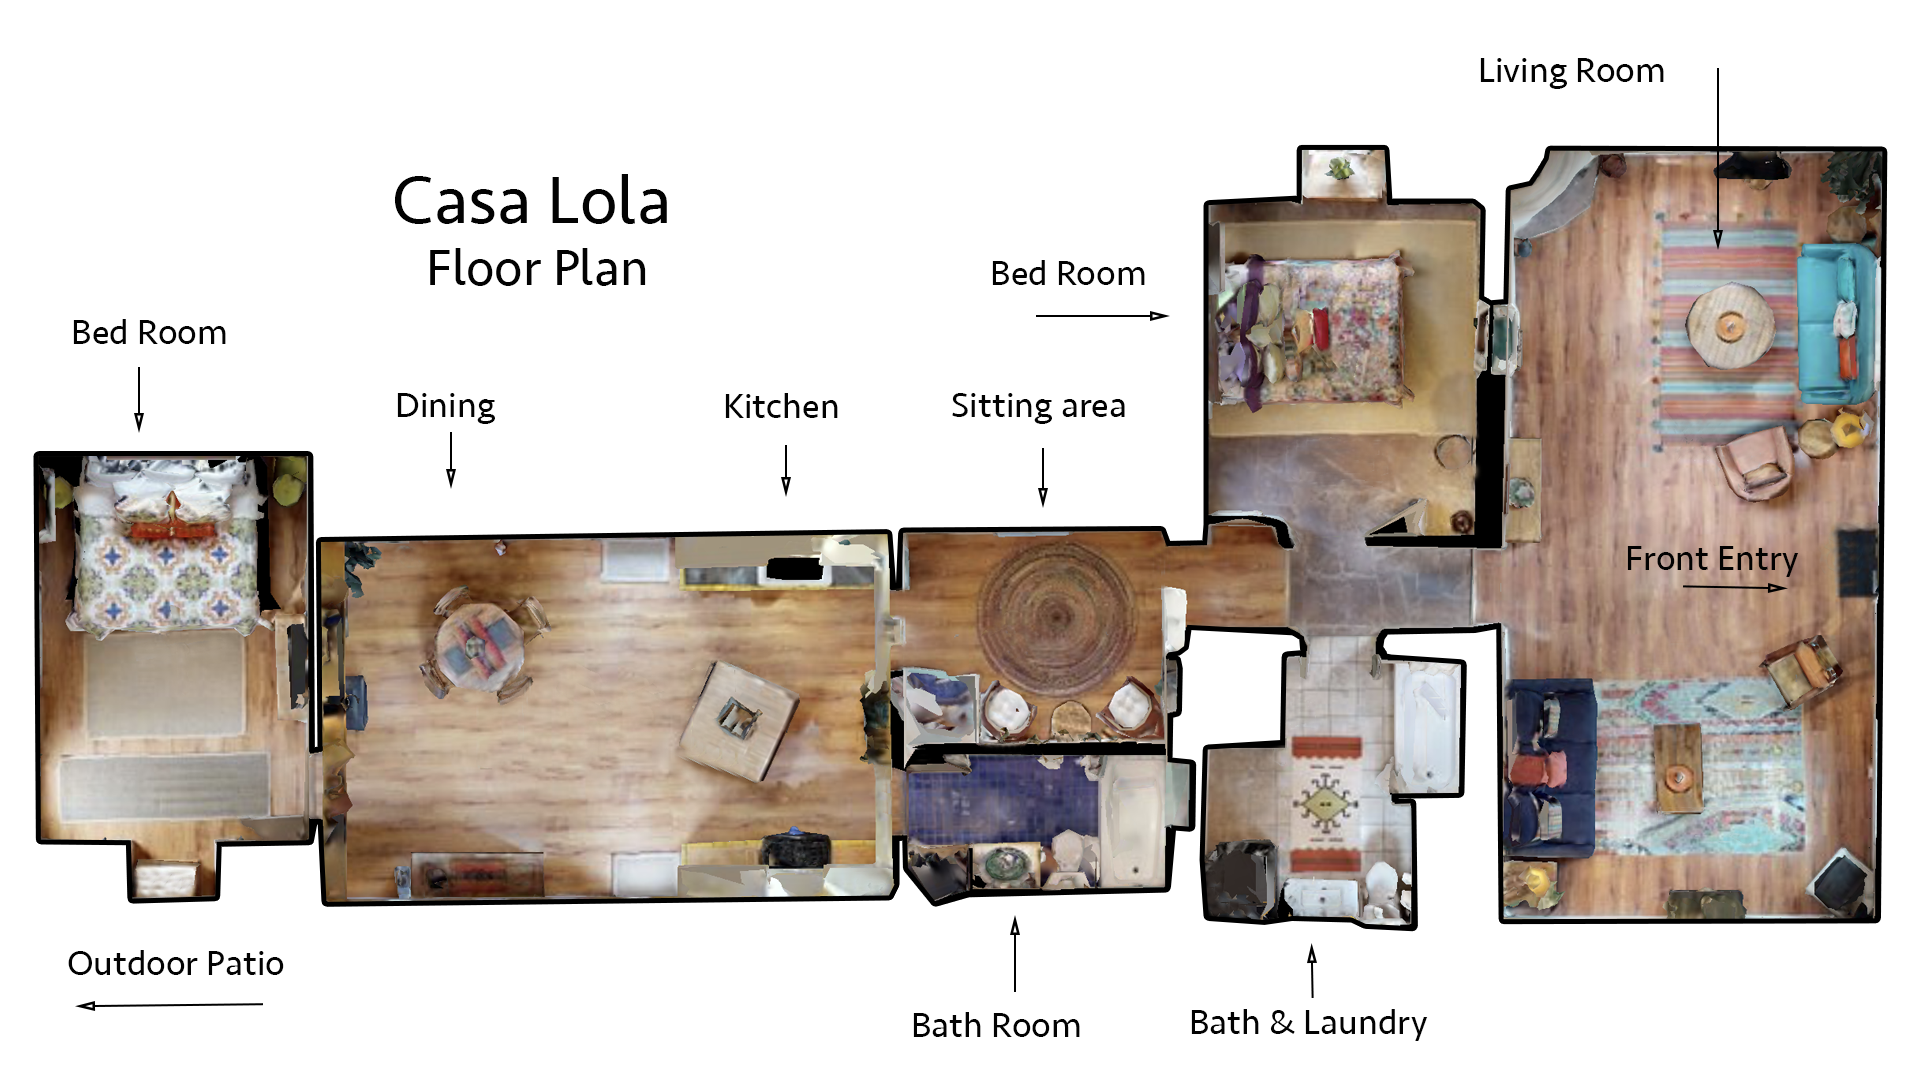 Floor Plan for Casa Lola